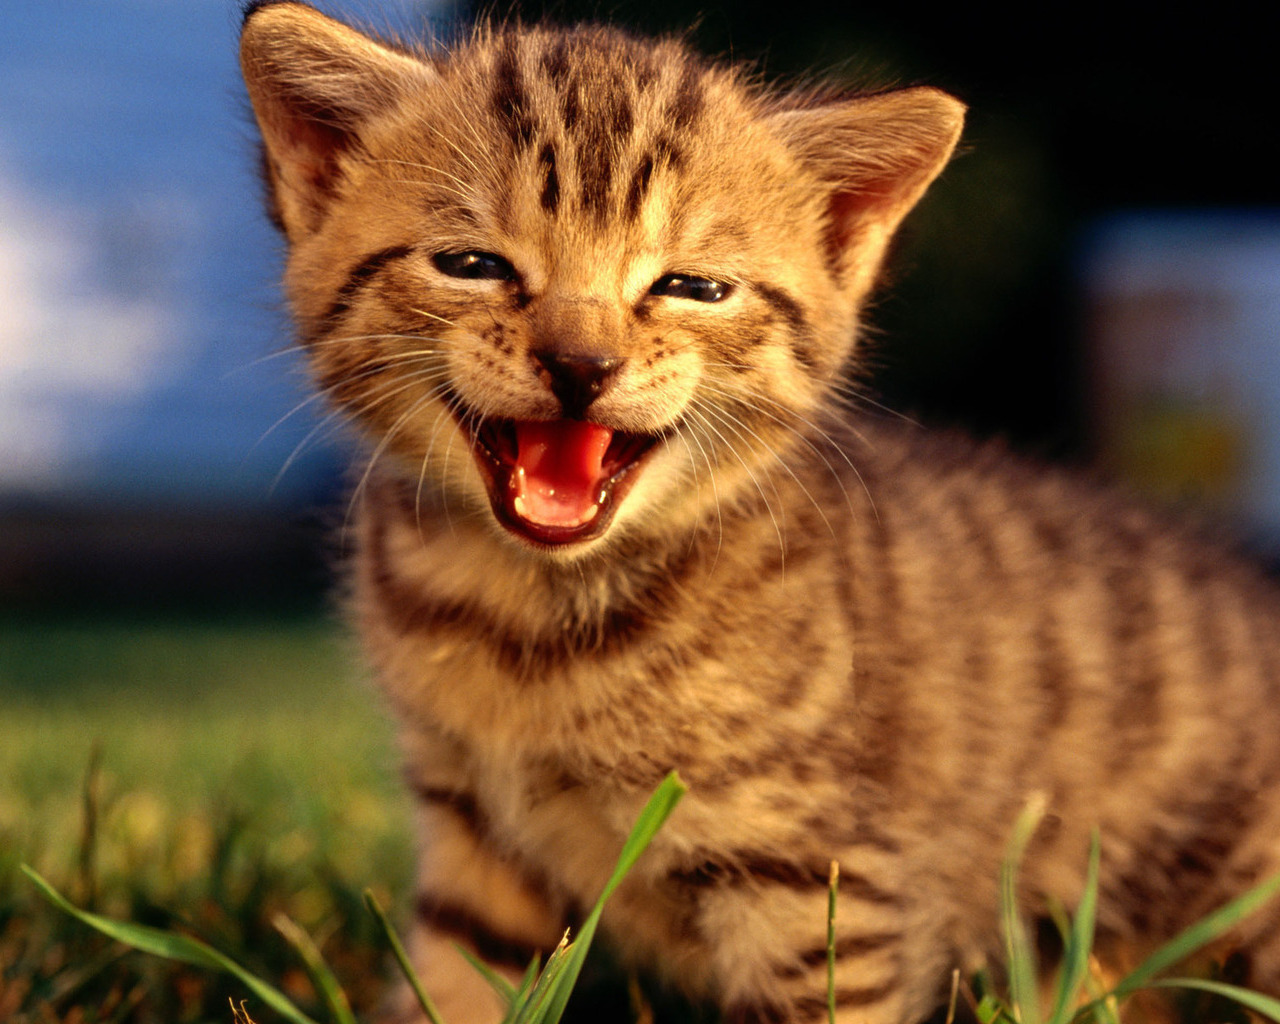 15044 download wallpaper Animals, Cats screensavers and pictures for free